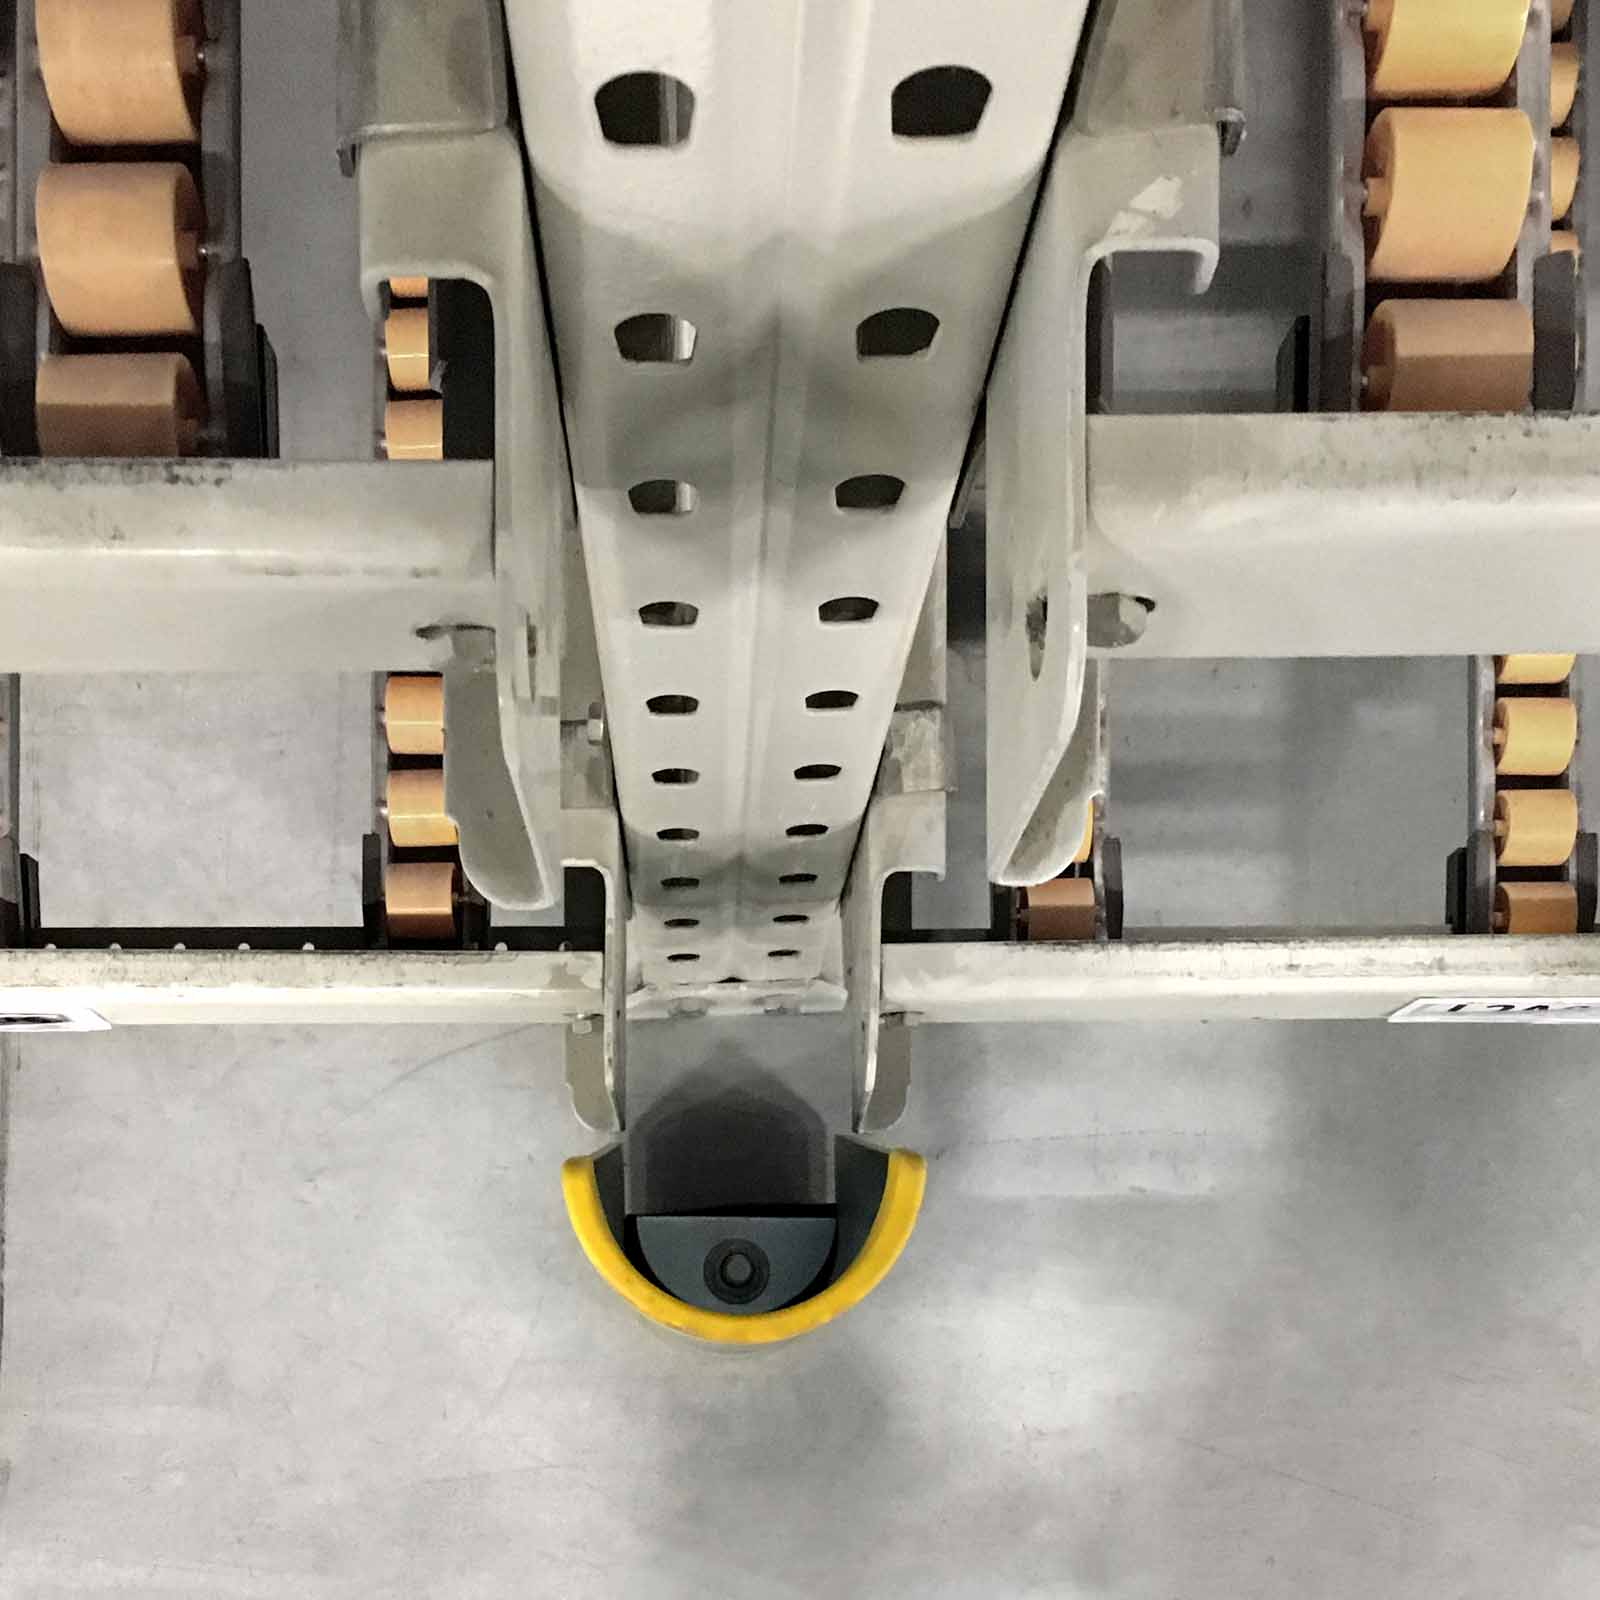 McCue Shock-Absorbing Rack Guard Safety Protection